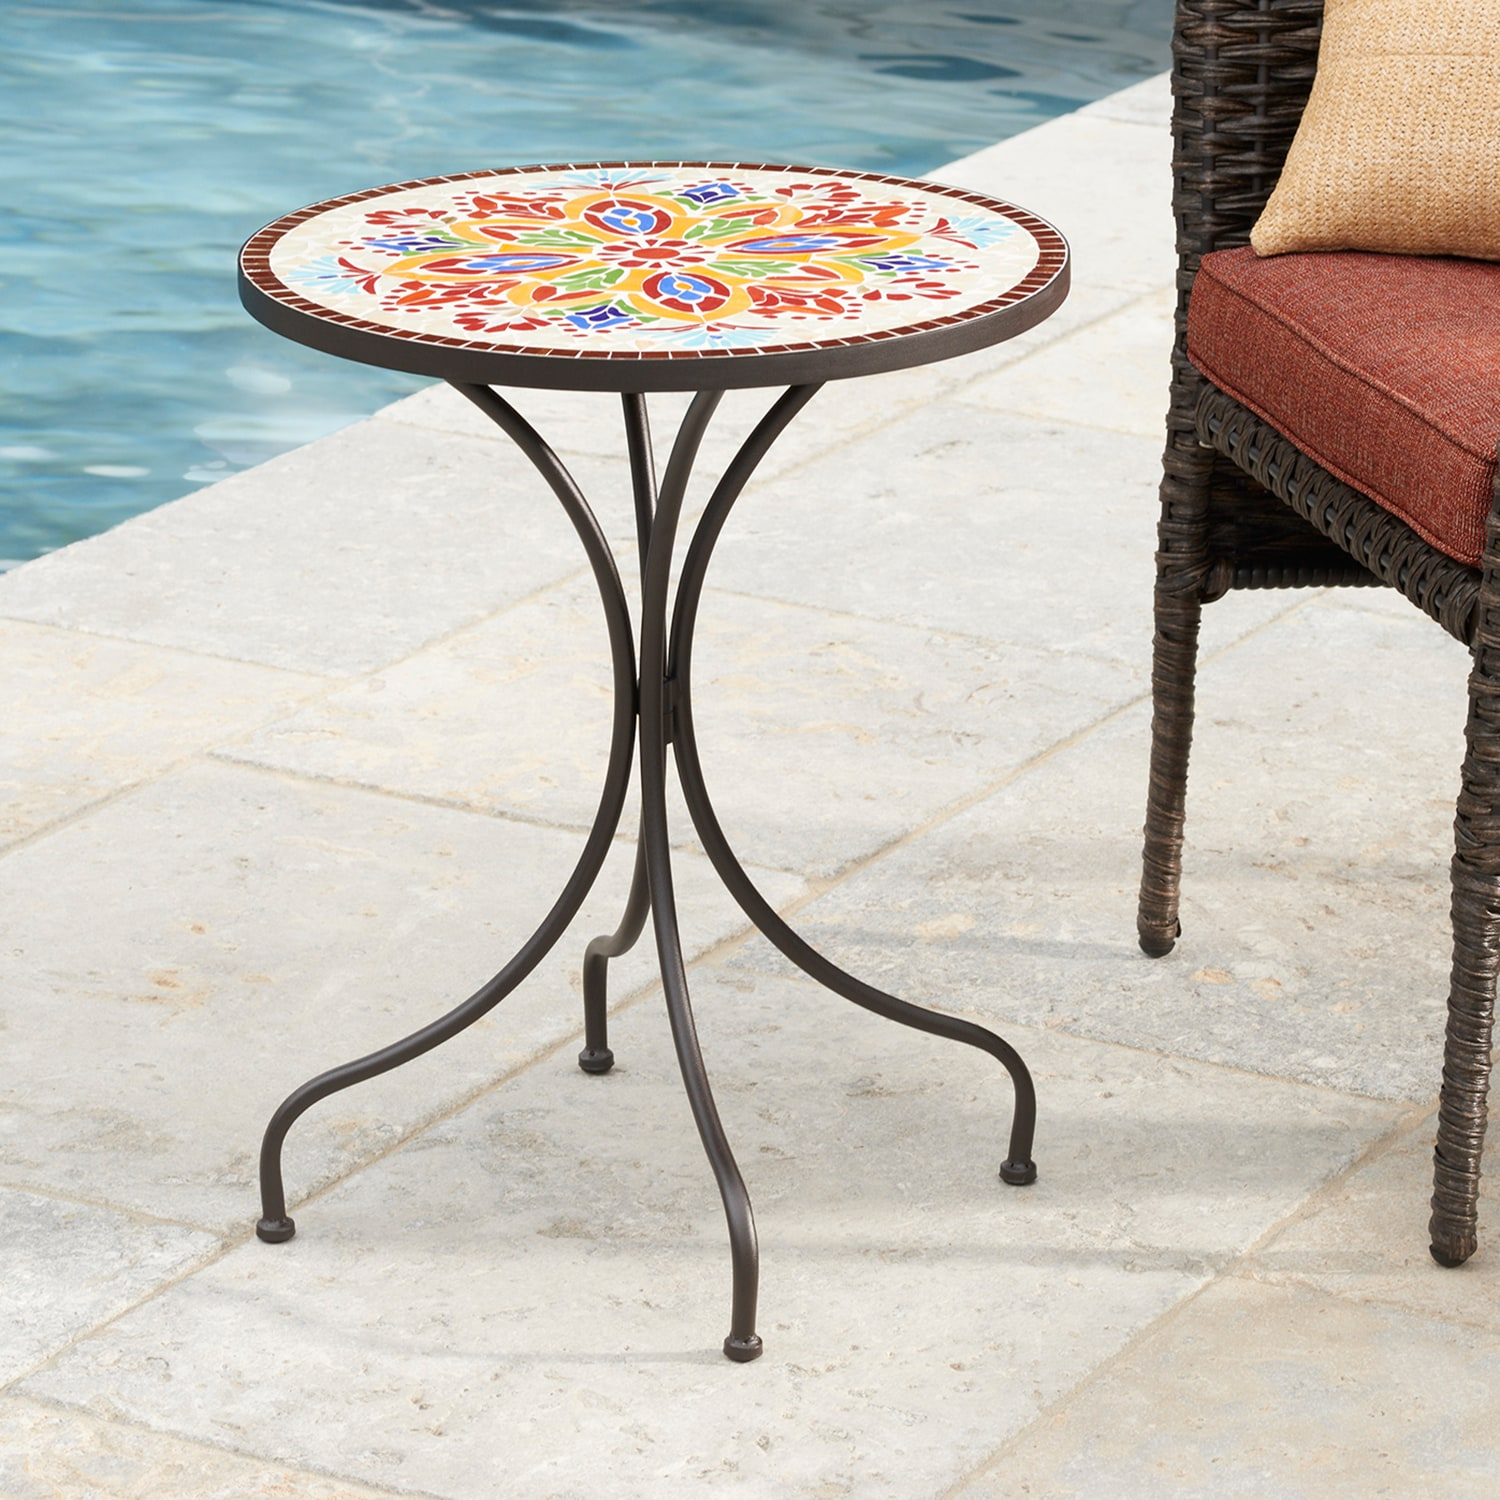 sonoma goods for life patio table medallion mosaic from kohls accent card narrow nesting side tables square concrete coffee vienna furniture cordless battery lamp trestle dining